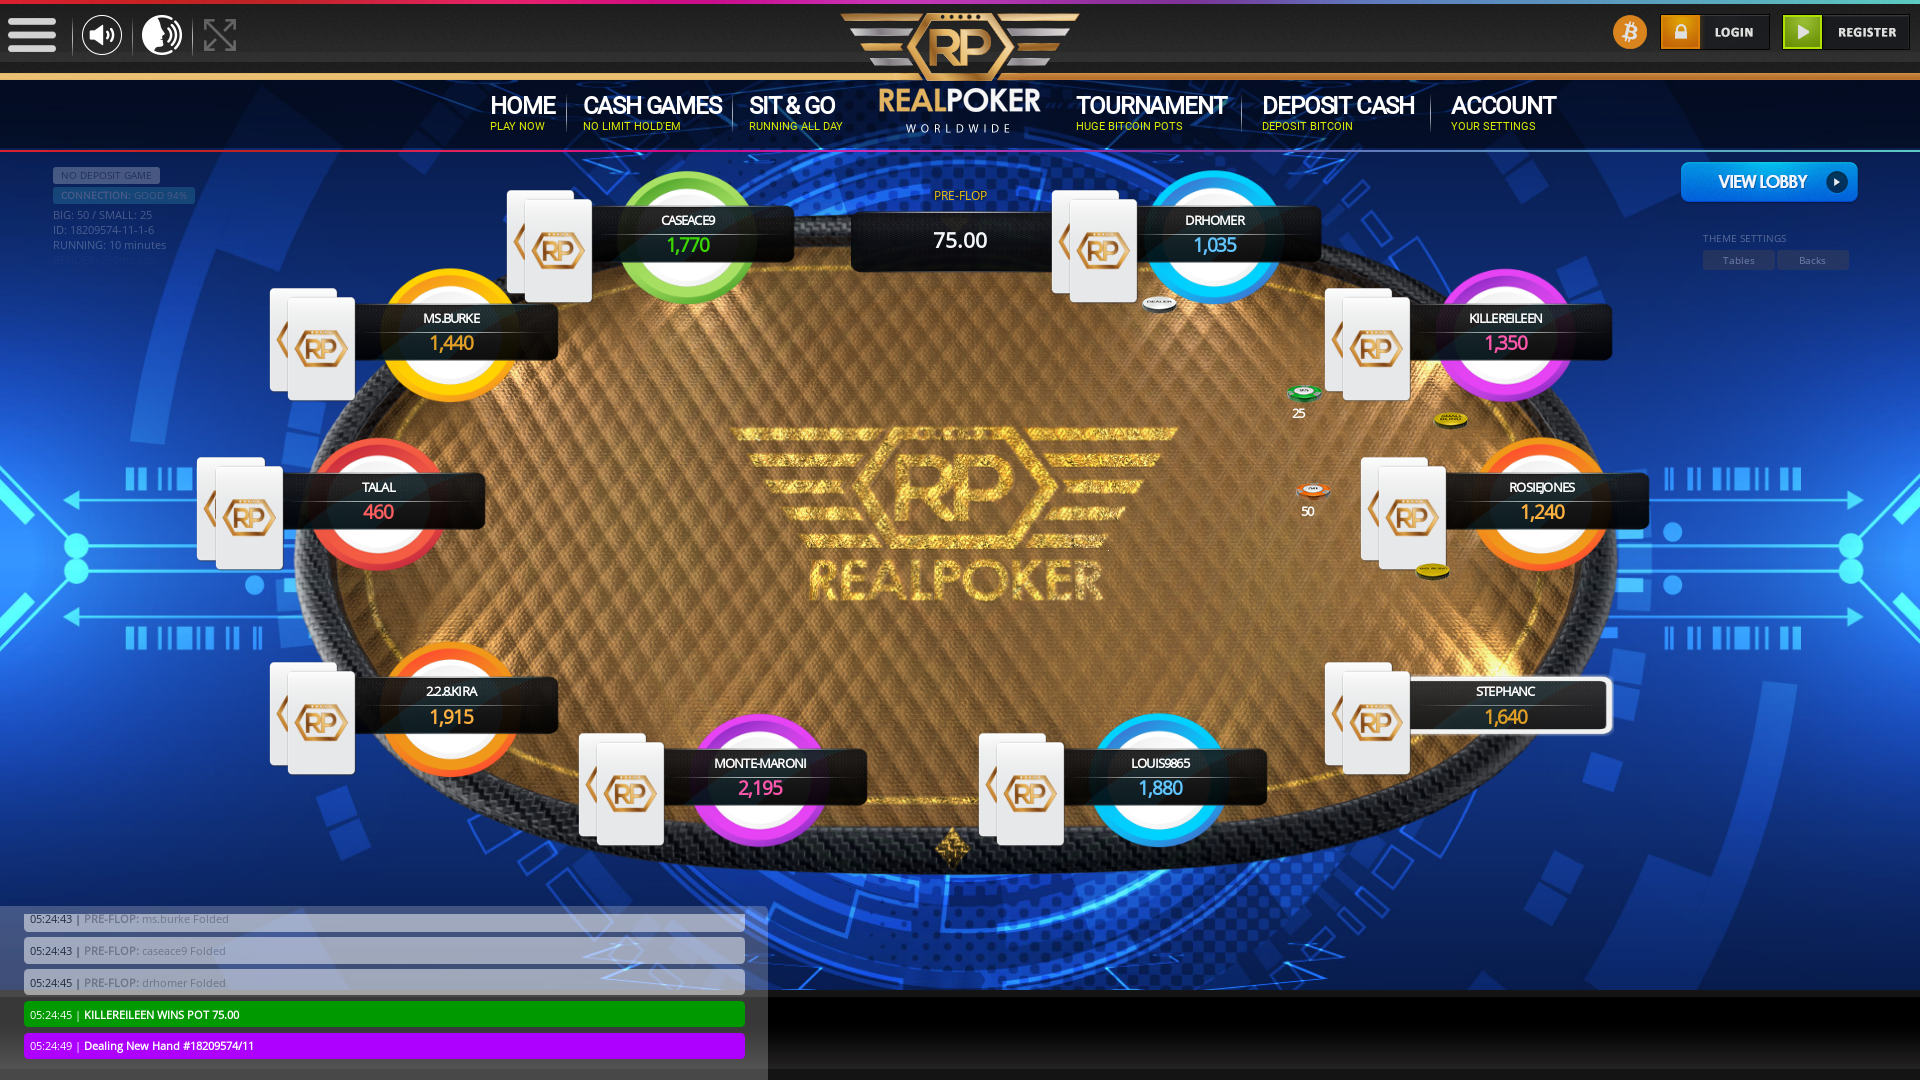 Makassar BTC Poker from July